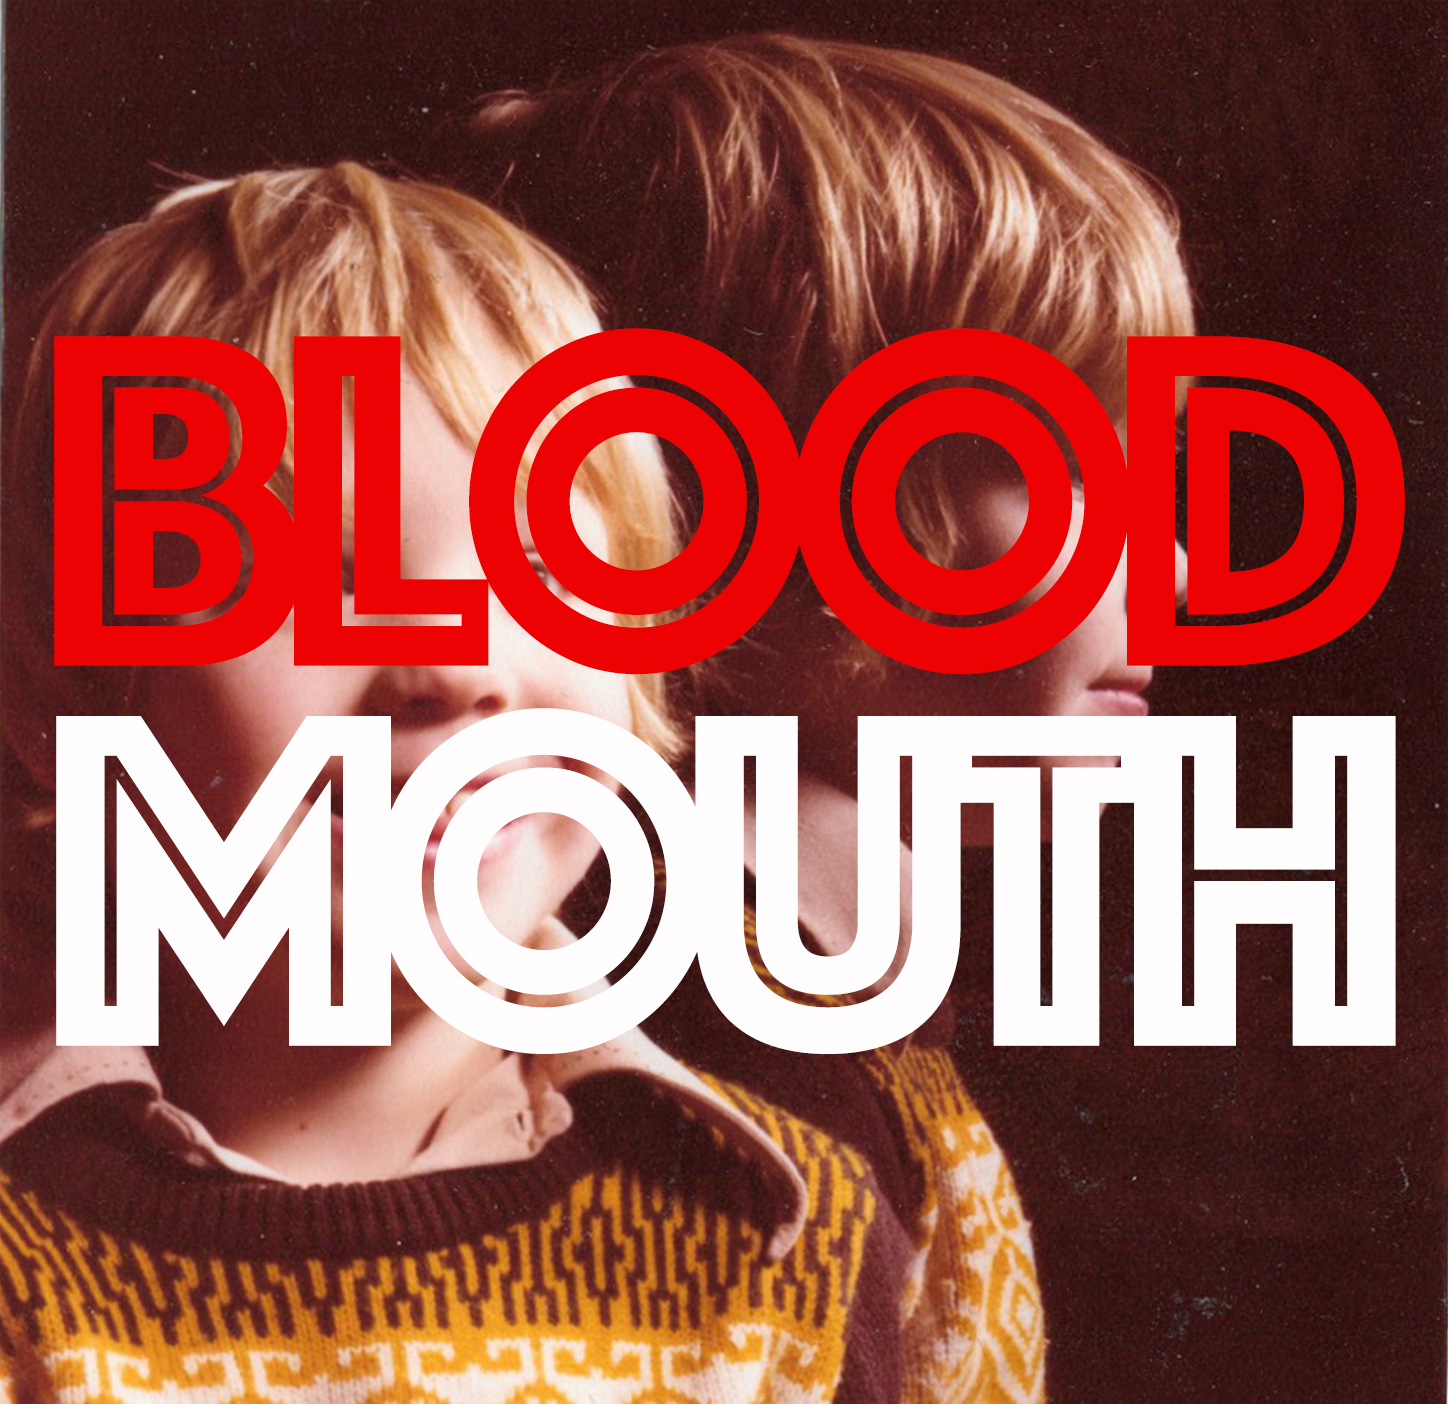 Blood Mouth Cover